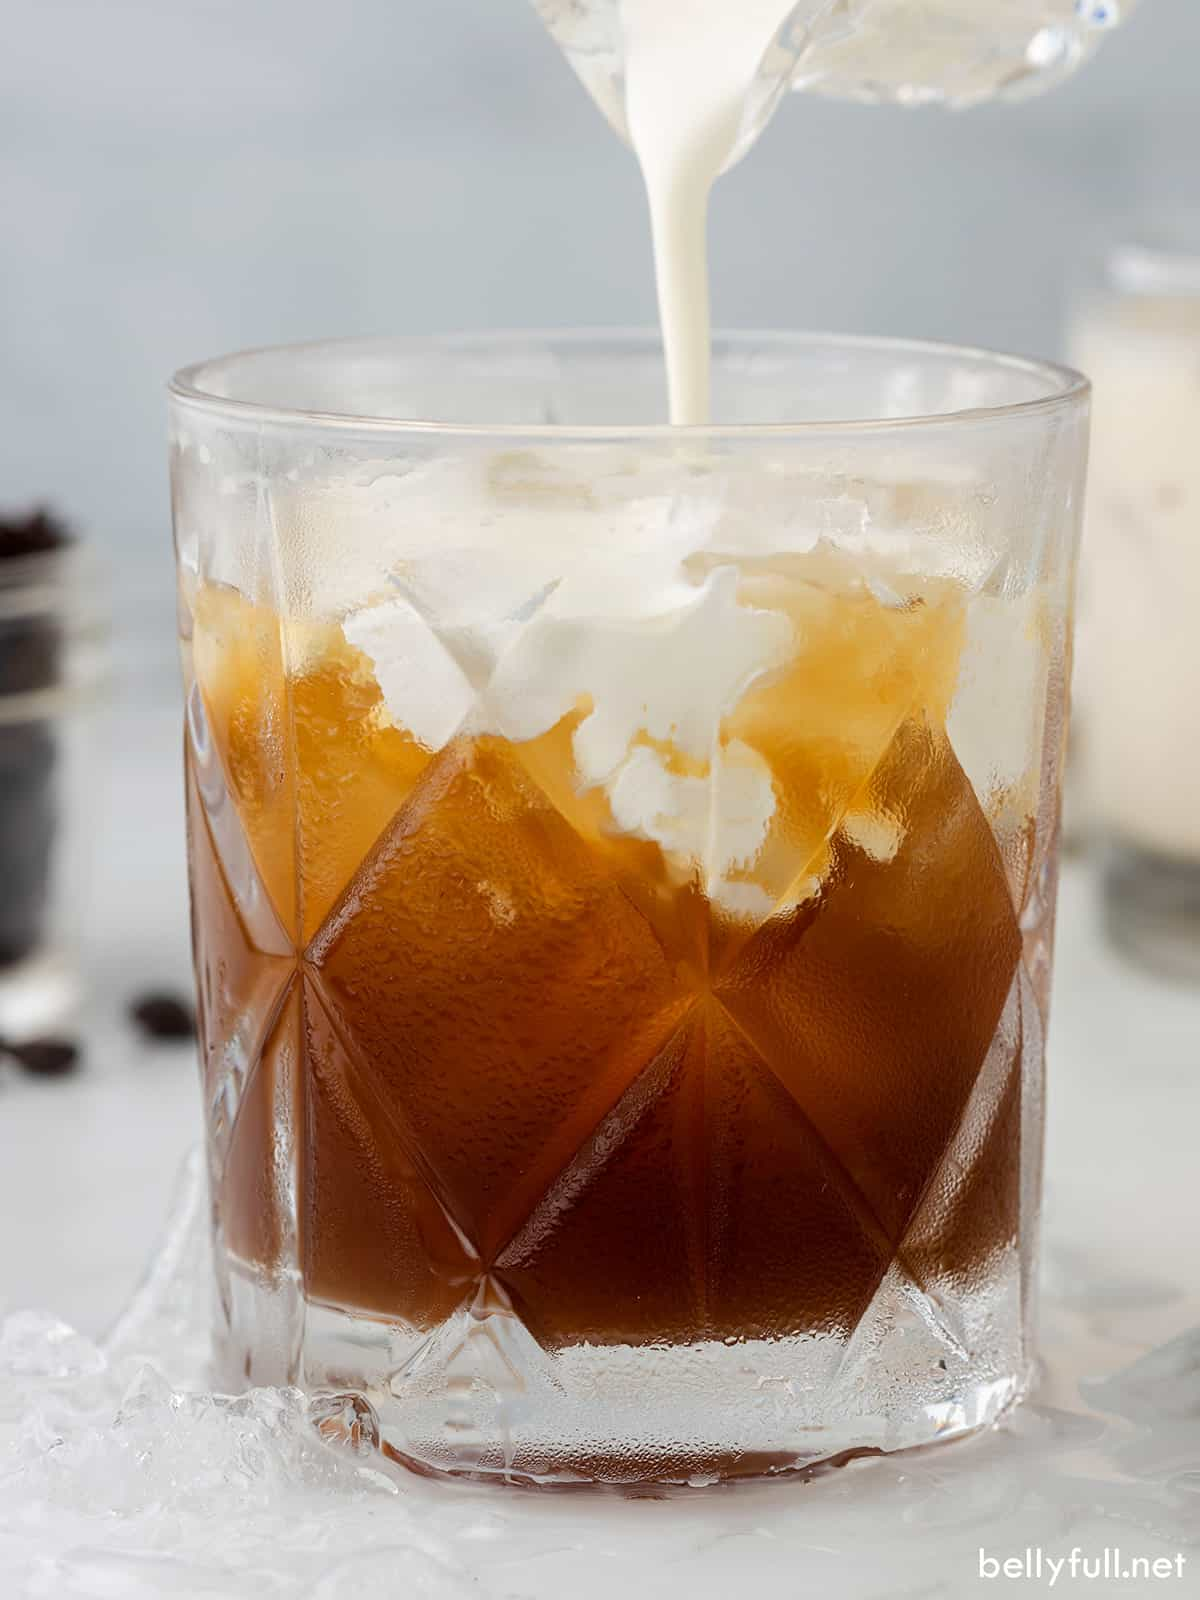 Cream being poured into a Black Russian cocktail to make a White Russian